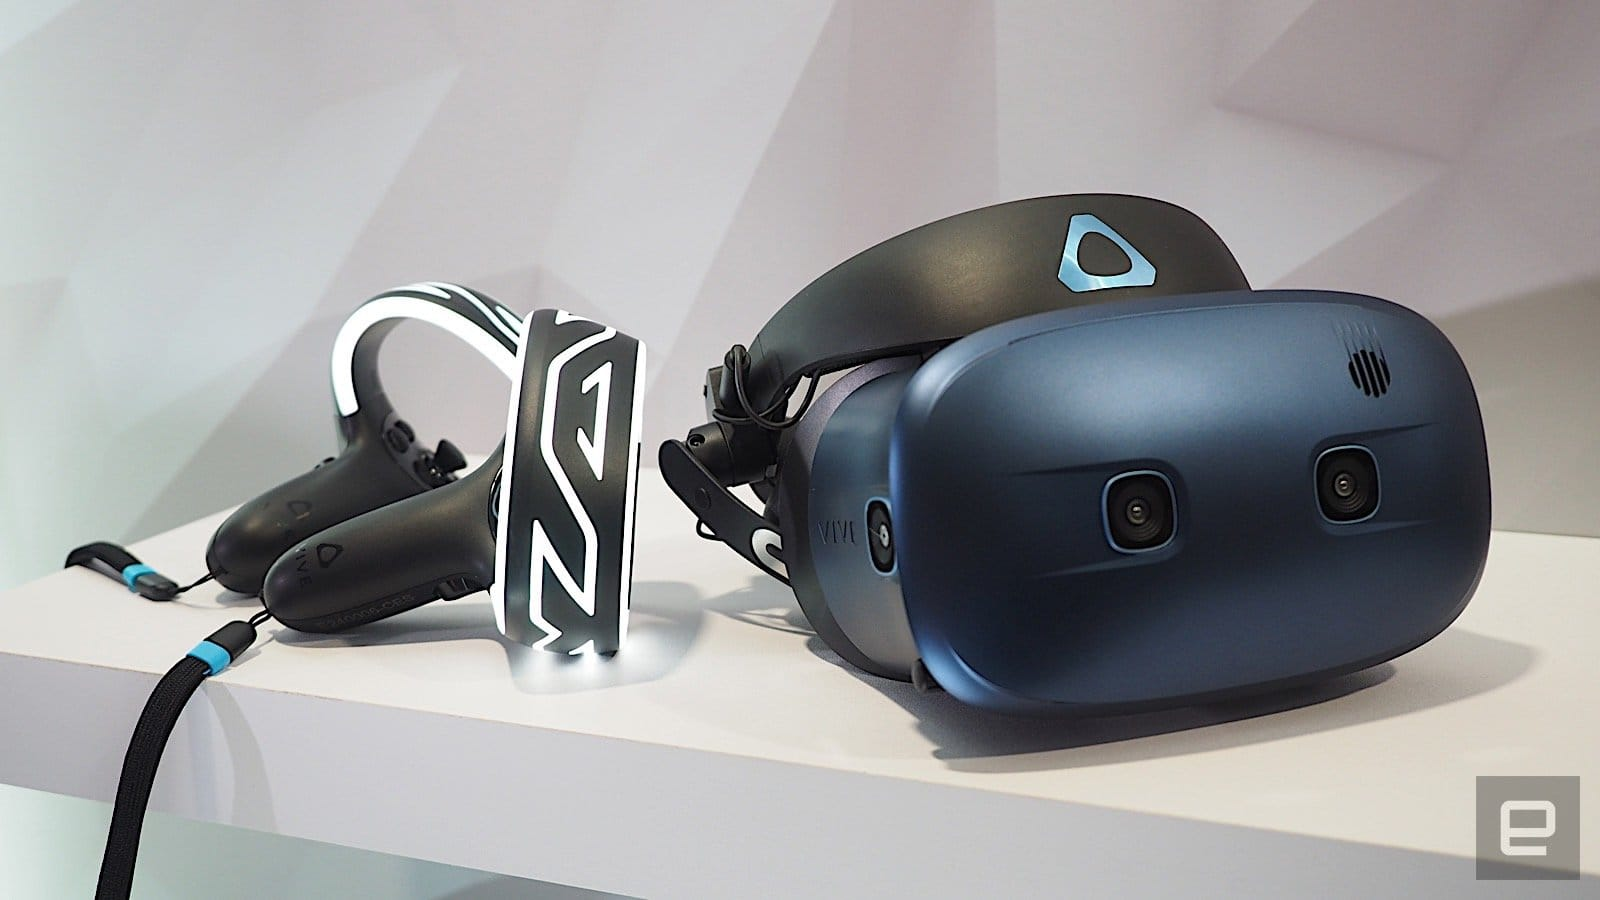 HTC's Cosmos VR headset features a sharper display and six tracking cameras